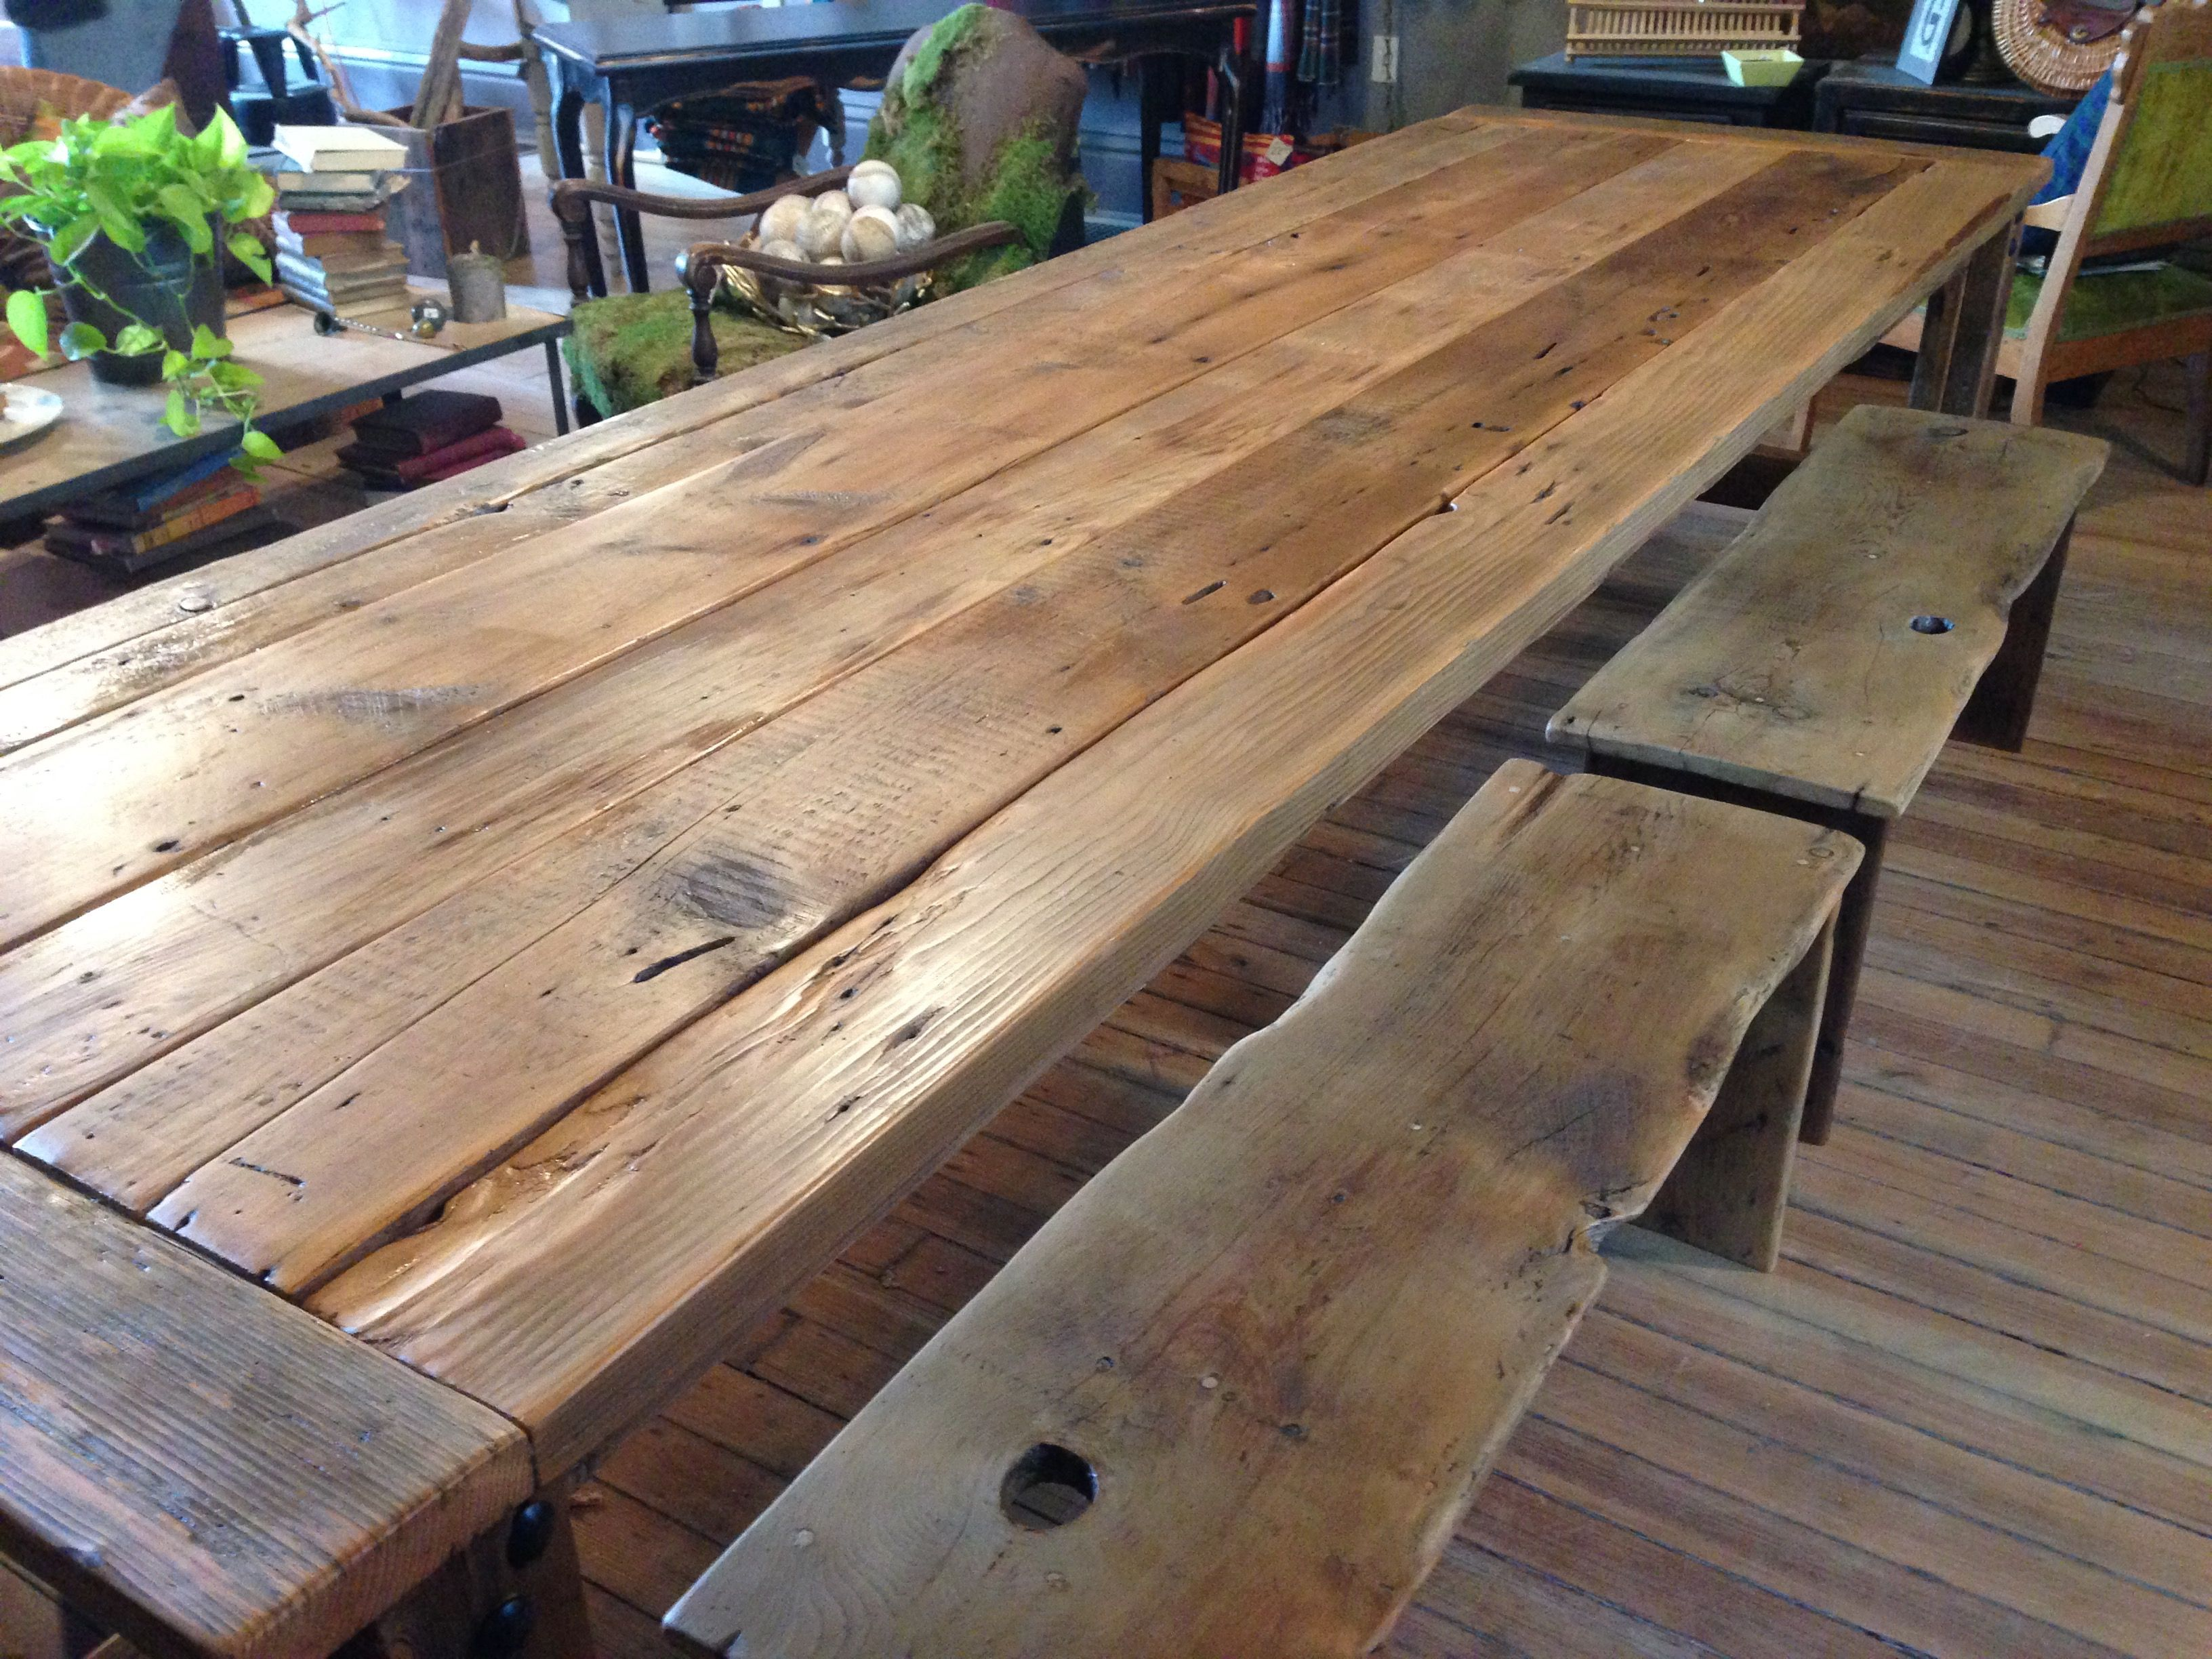 Handmade Table And Benches Made From Vintage Iowa Barn Wood.